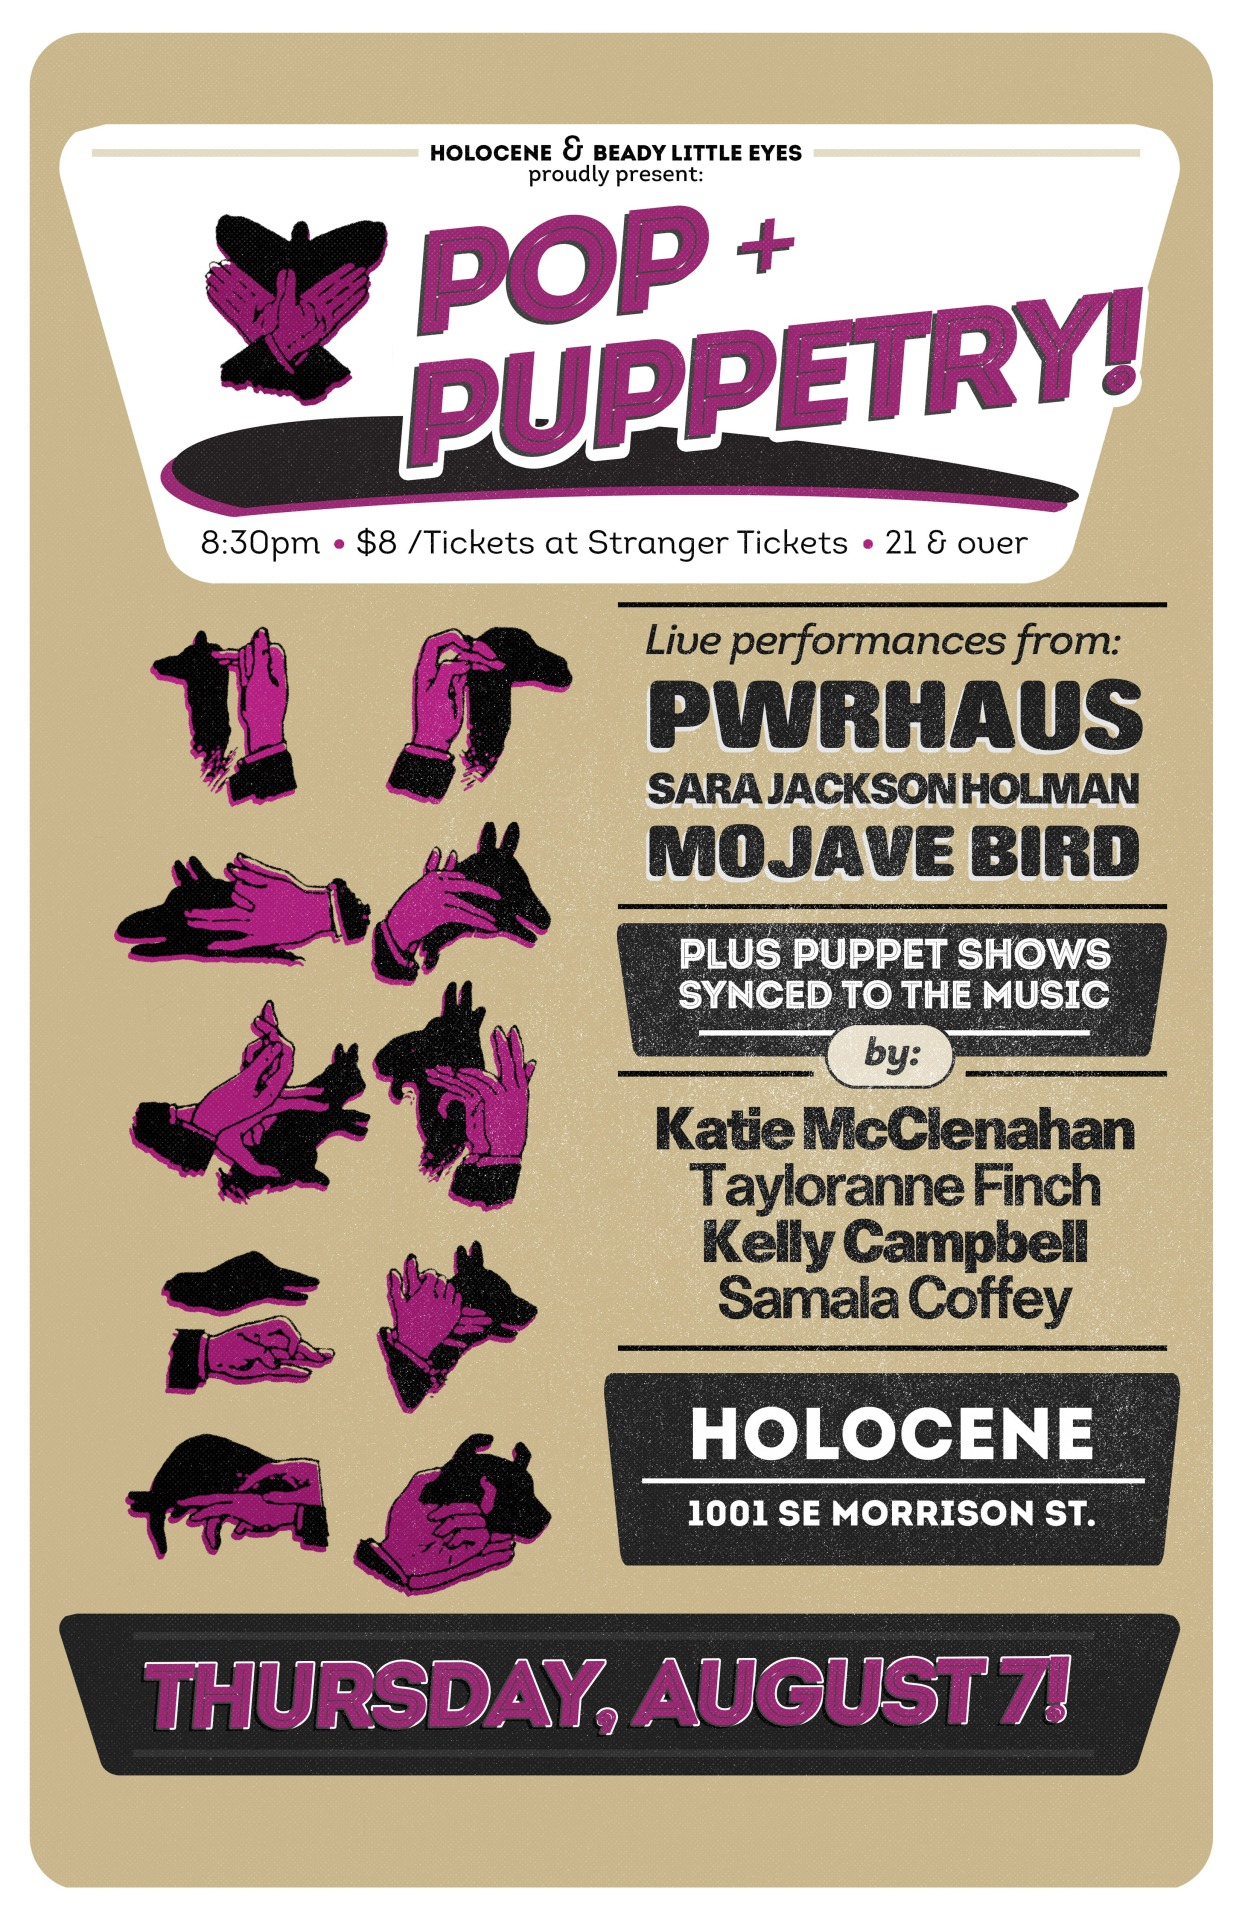 Brand Spankin' Cool poster art for the upcoming POP + PUPPETRY show at Holocene on THURSDAY AUGUST 7th!  TICKETS HERE!